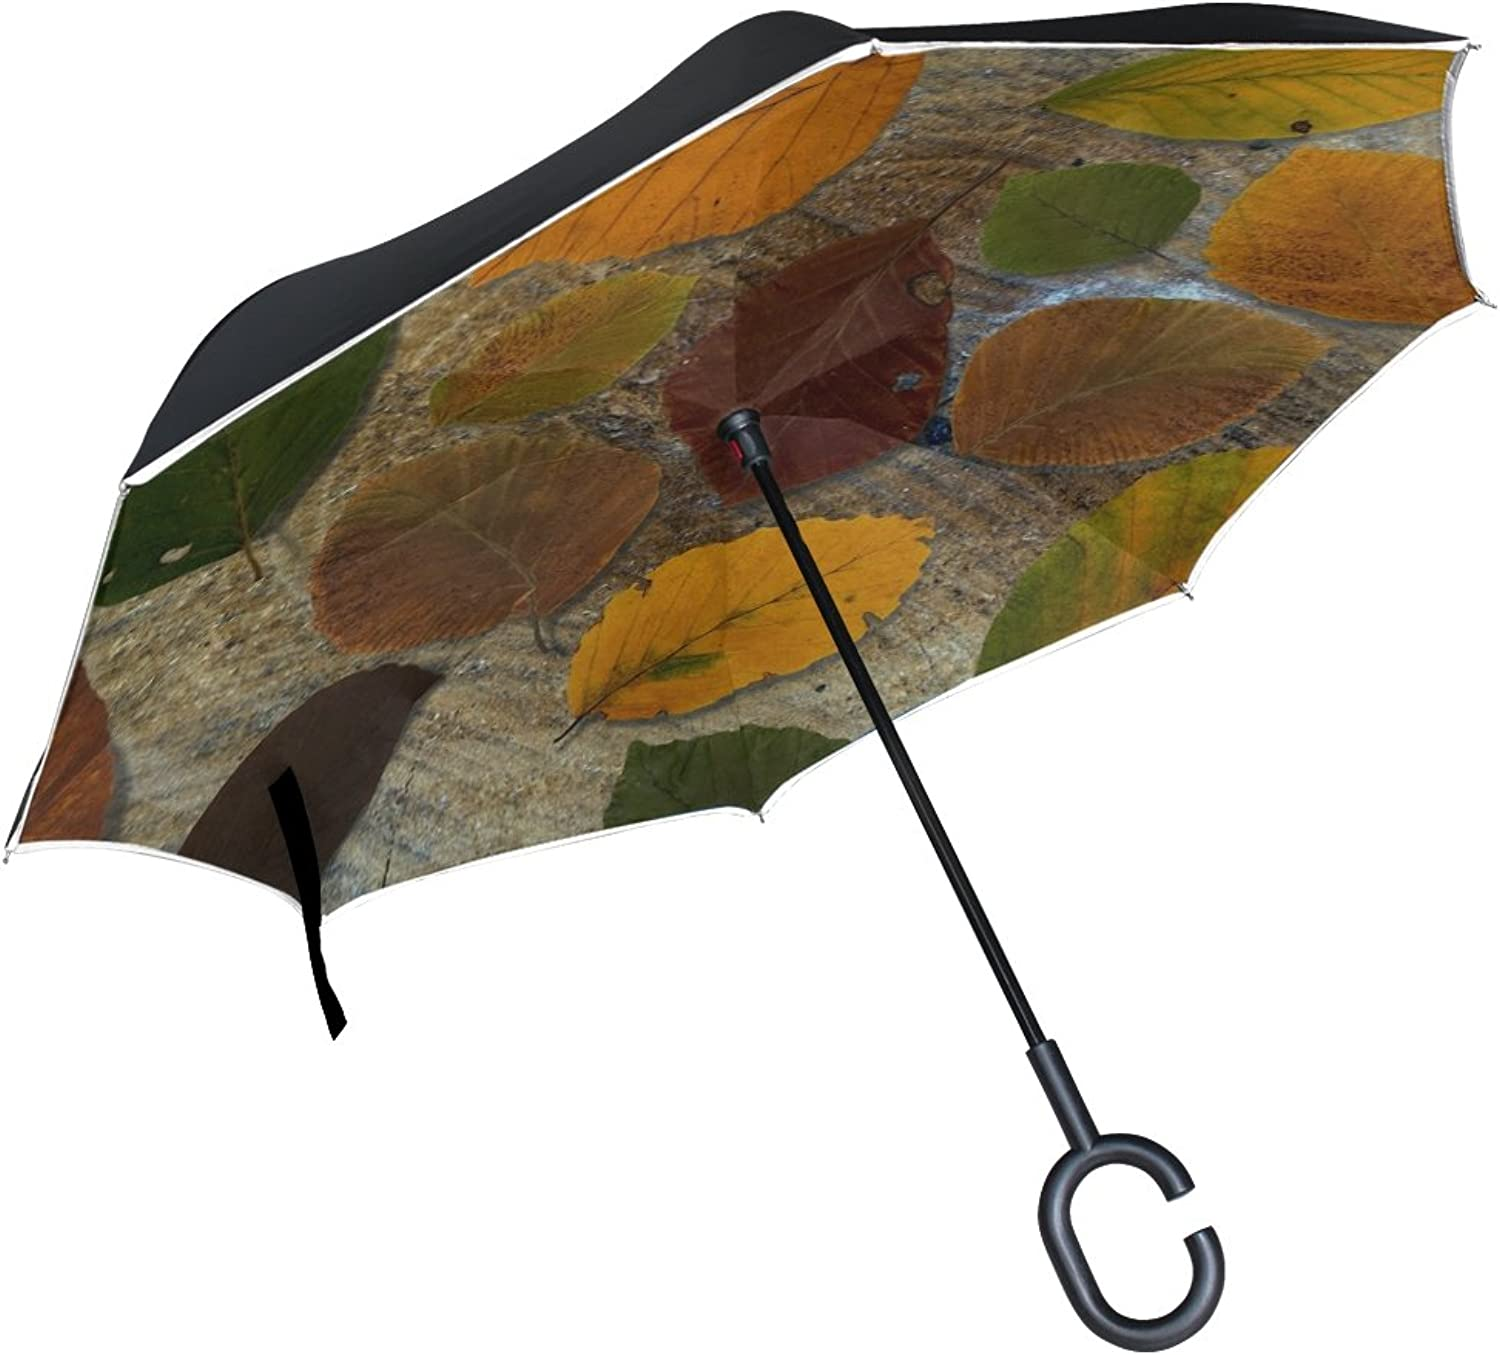 Double Layer Ingreened Leaves Beech Book Leaves Wood Umbrellas Reverse Folding Umbrella Windproof Uv Predection Big Straight Umbrella for Car Rain Outdoor with CShaped Handle